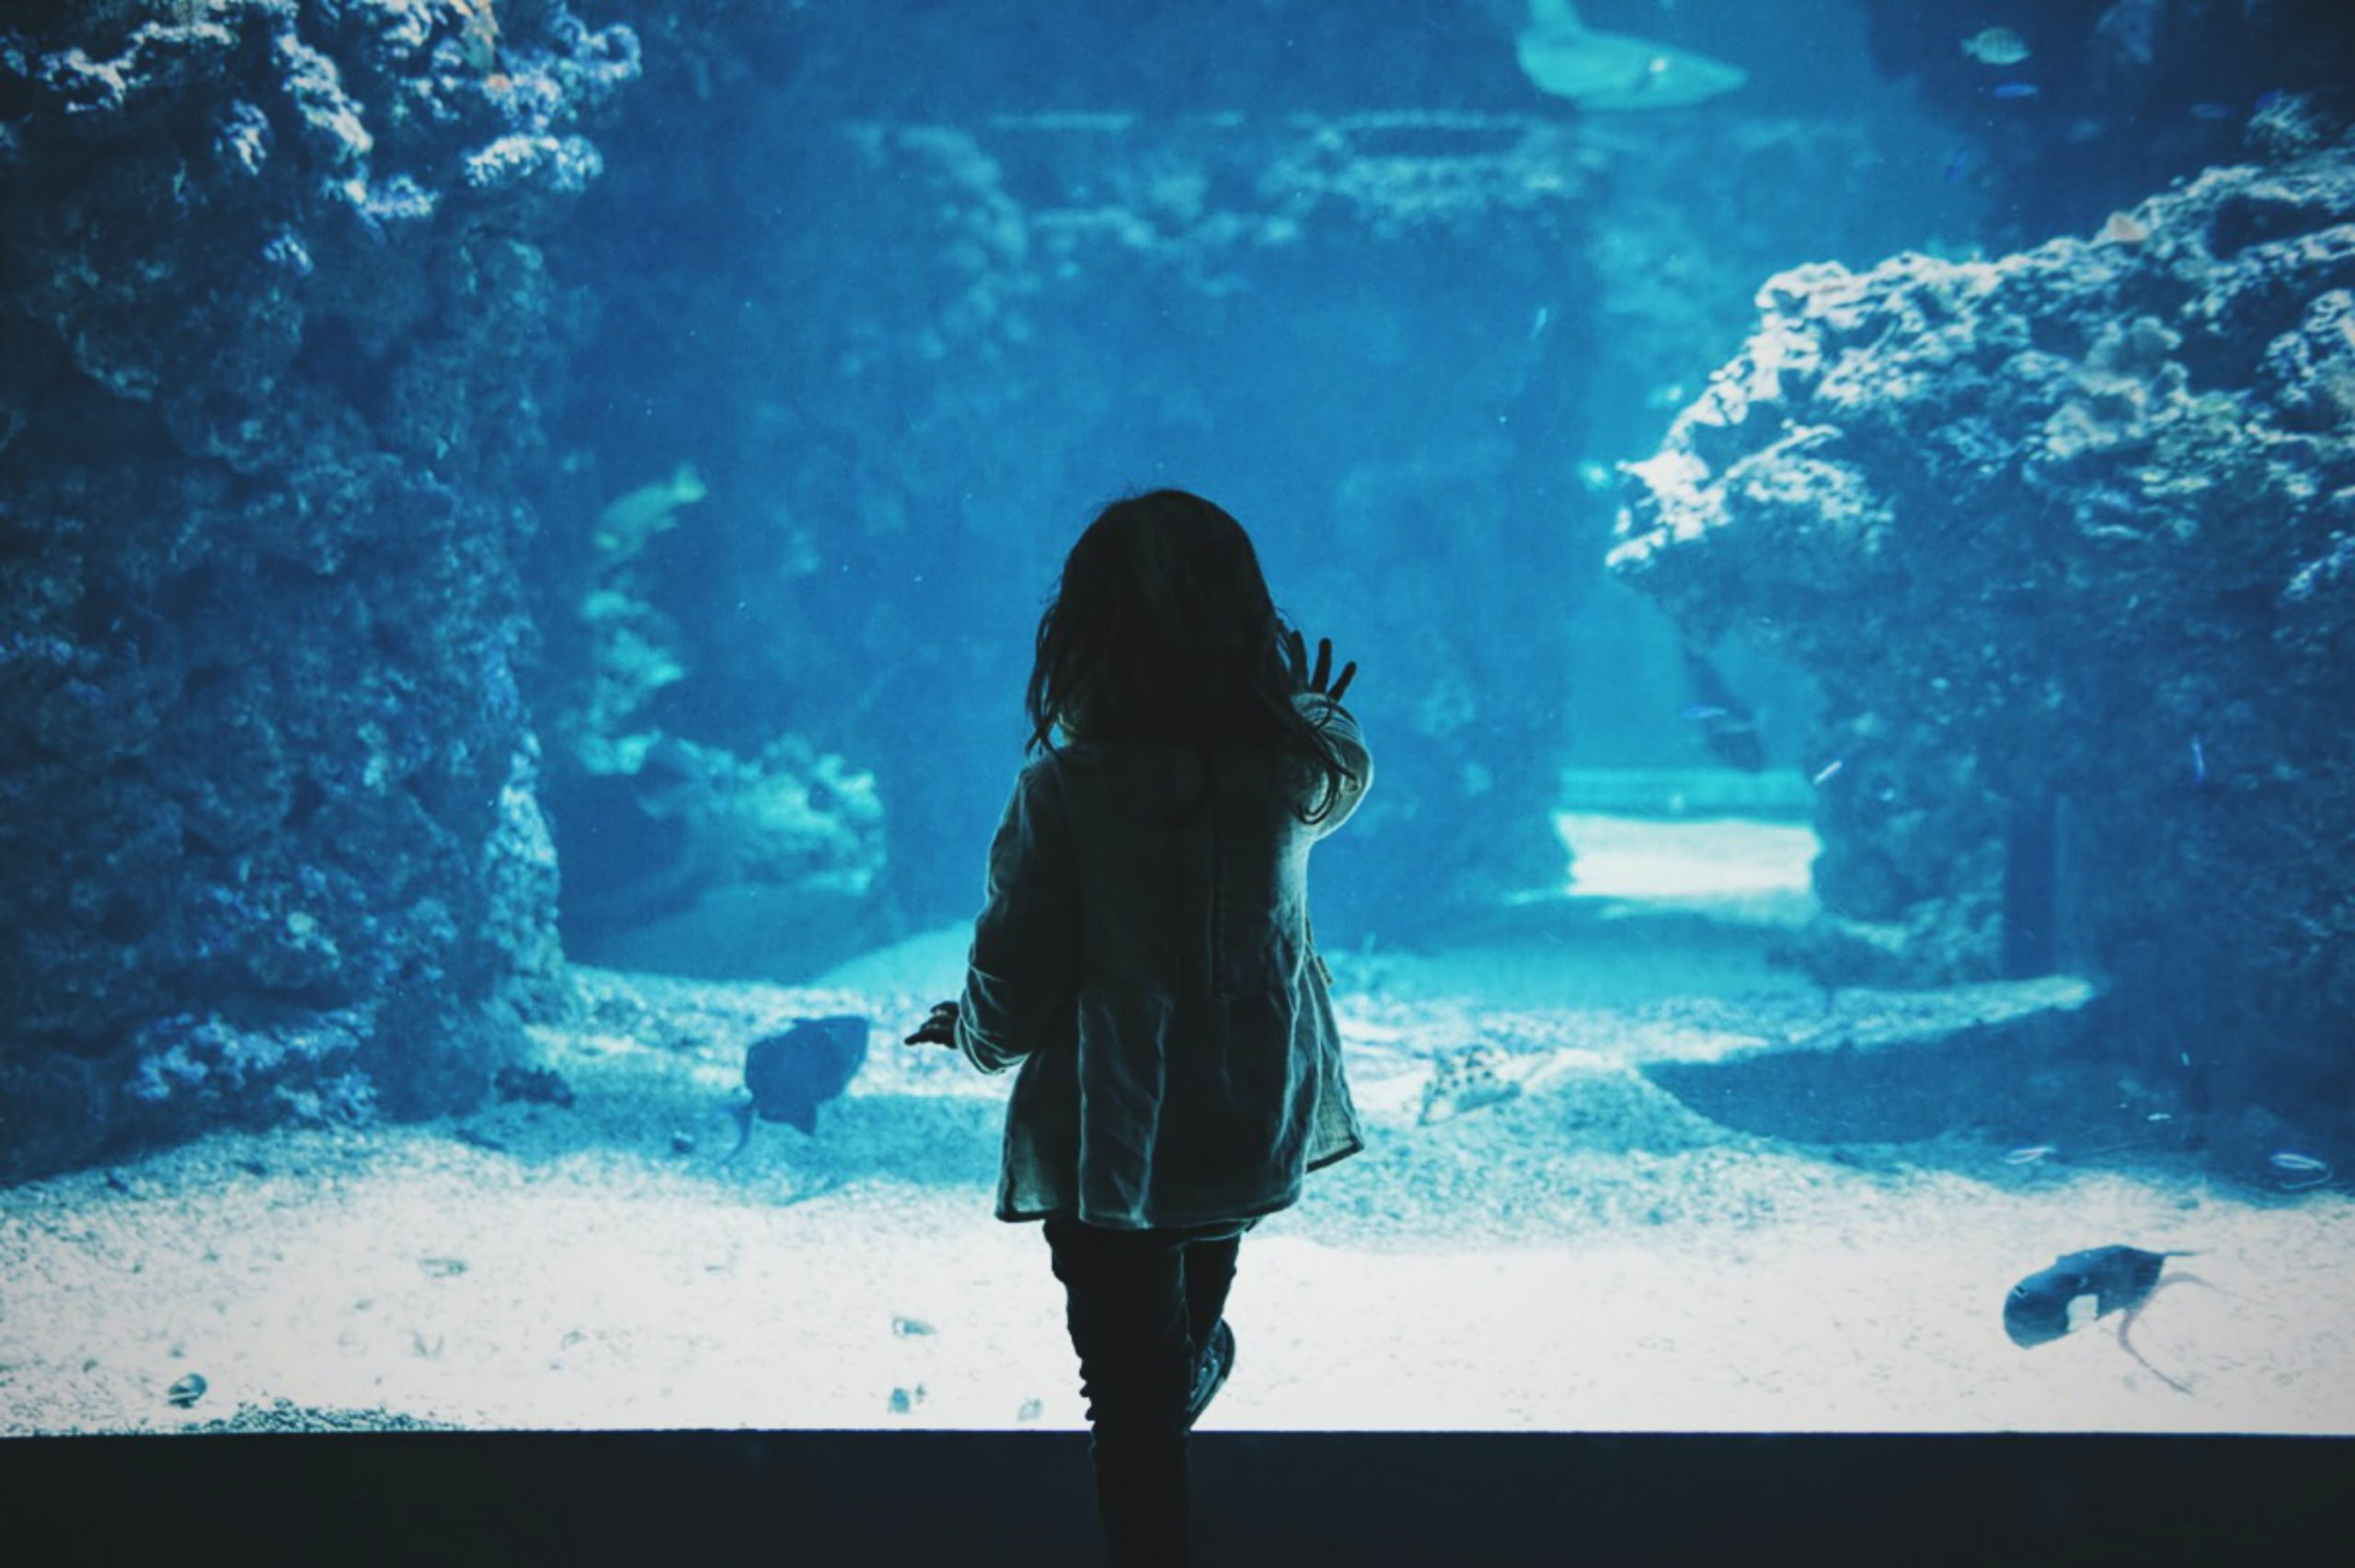 Autism: a small child looking into an aquarium with their hand on the glass